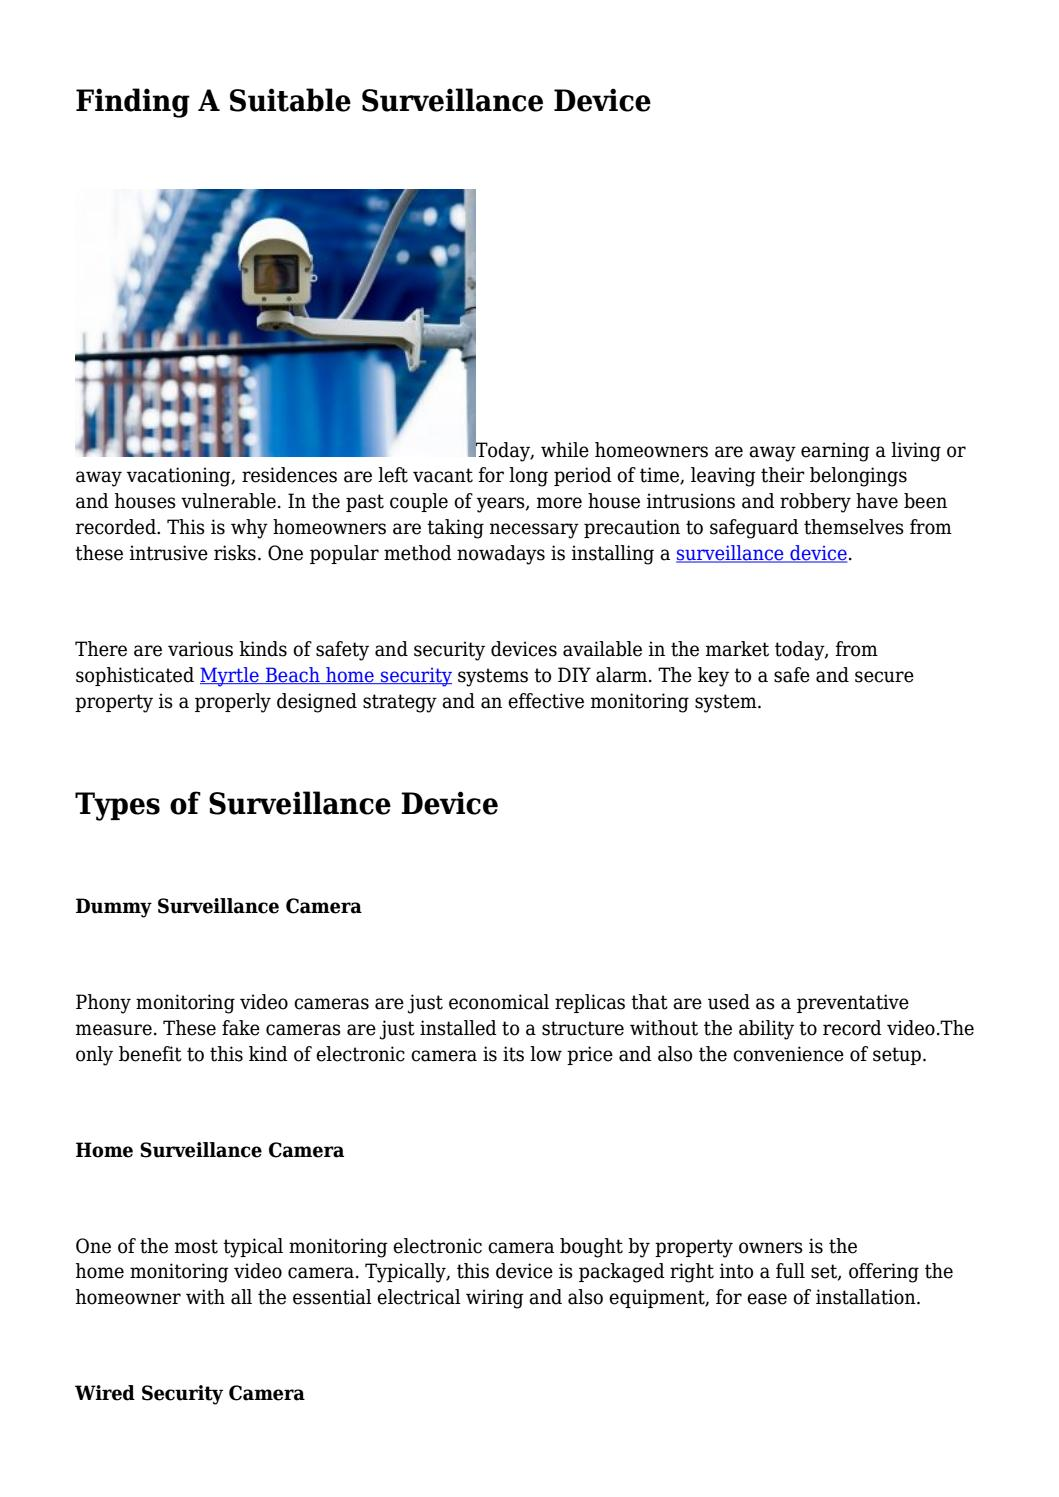 Finding A Suitable Surveillance Device By Home Security Pros Myrtle House Wiring Strategy Beach Issuu